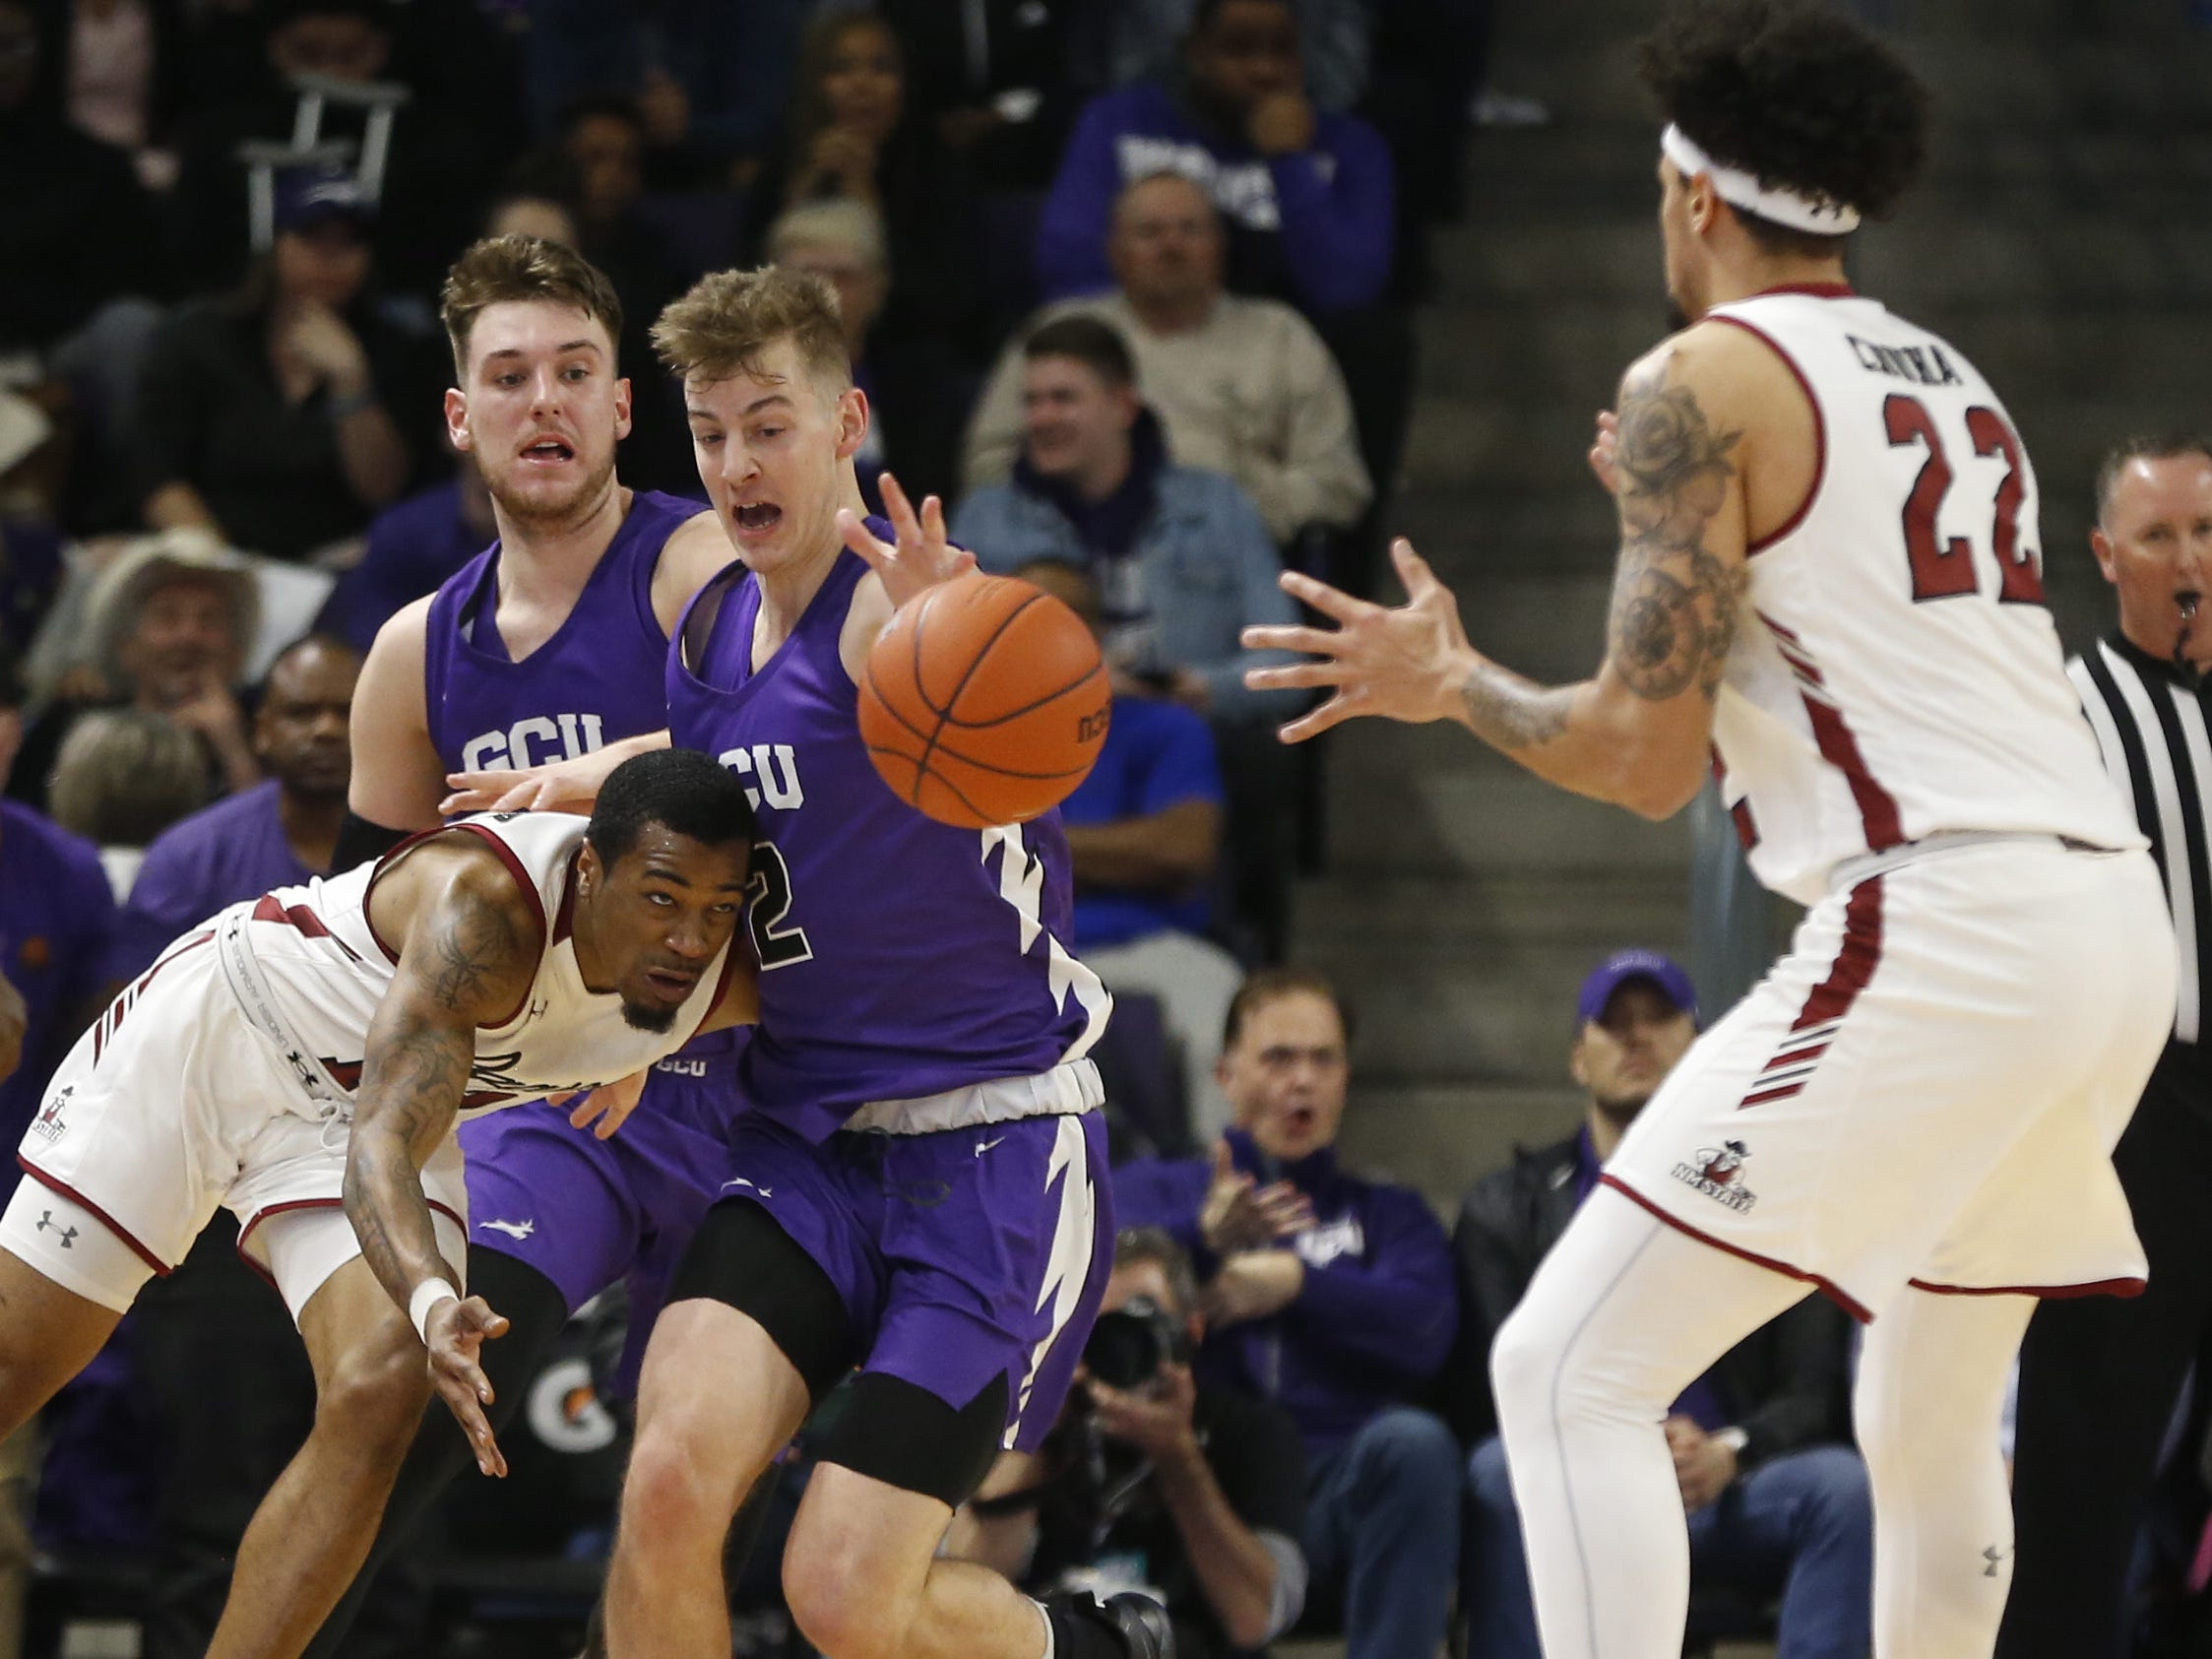 New Mexico State's AJ Harris (12) passes the ball under pressure from GCU's Trey Dreschel (2) during the first half at Grand Canyon University Arena in Phoenix, Ariz. on February 9, 2019.